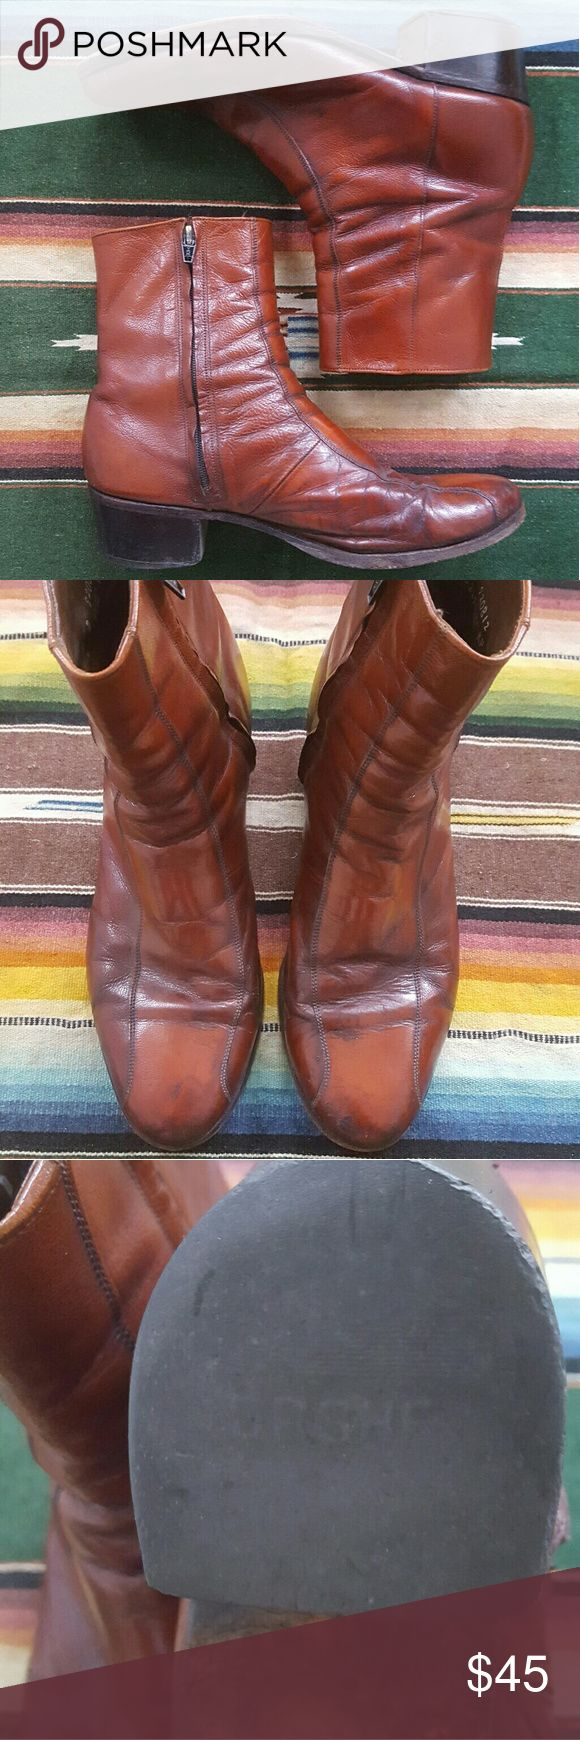 Florsheim 70s Beatle boot These icon vintage boots by Florsheim Imperial are in excellent vintage condition.  Slight creasing around the toes, but the leather, insole, and soles are in good shape.  Both zippers are in good working condition.  Size listed is men's 8D- will also work for a women's 10M. Florsheim Shoes Boots